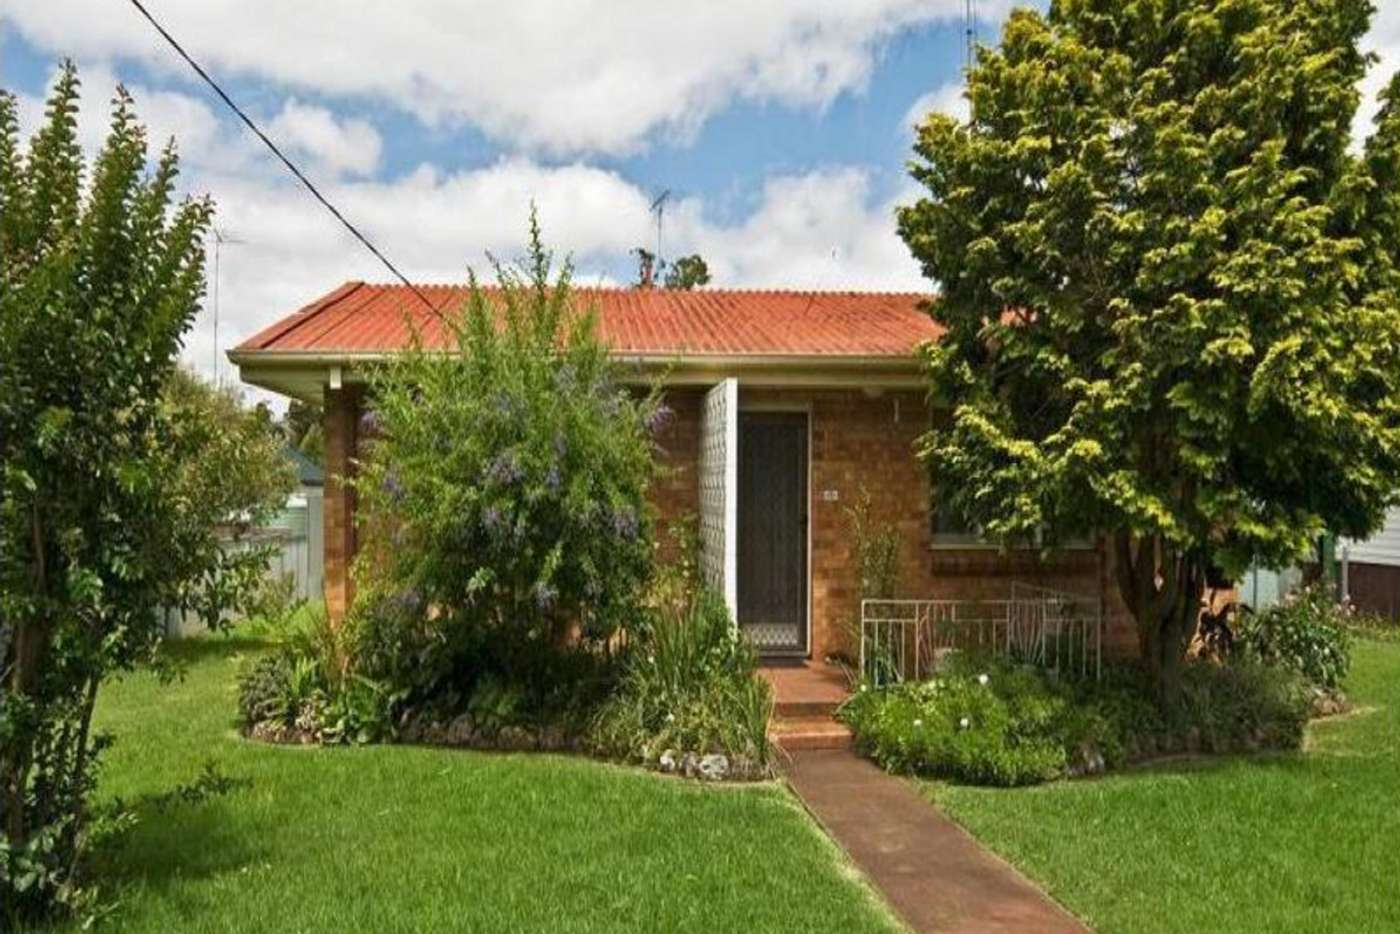 Main view of Homely house listing, 29 Sir Street, East Toowoomba QLD 4350